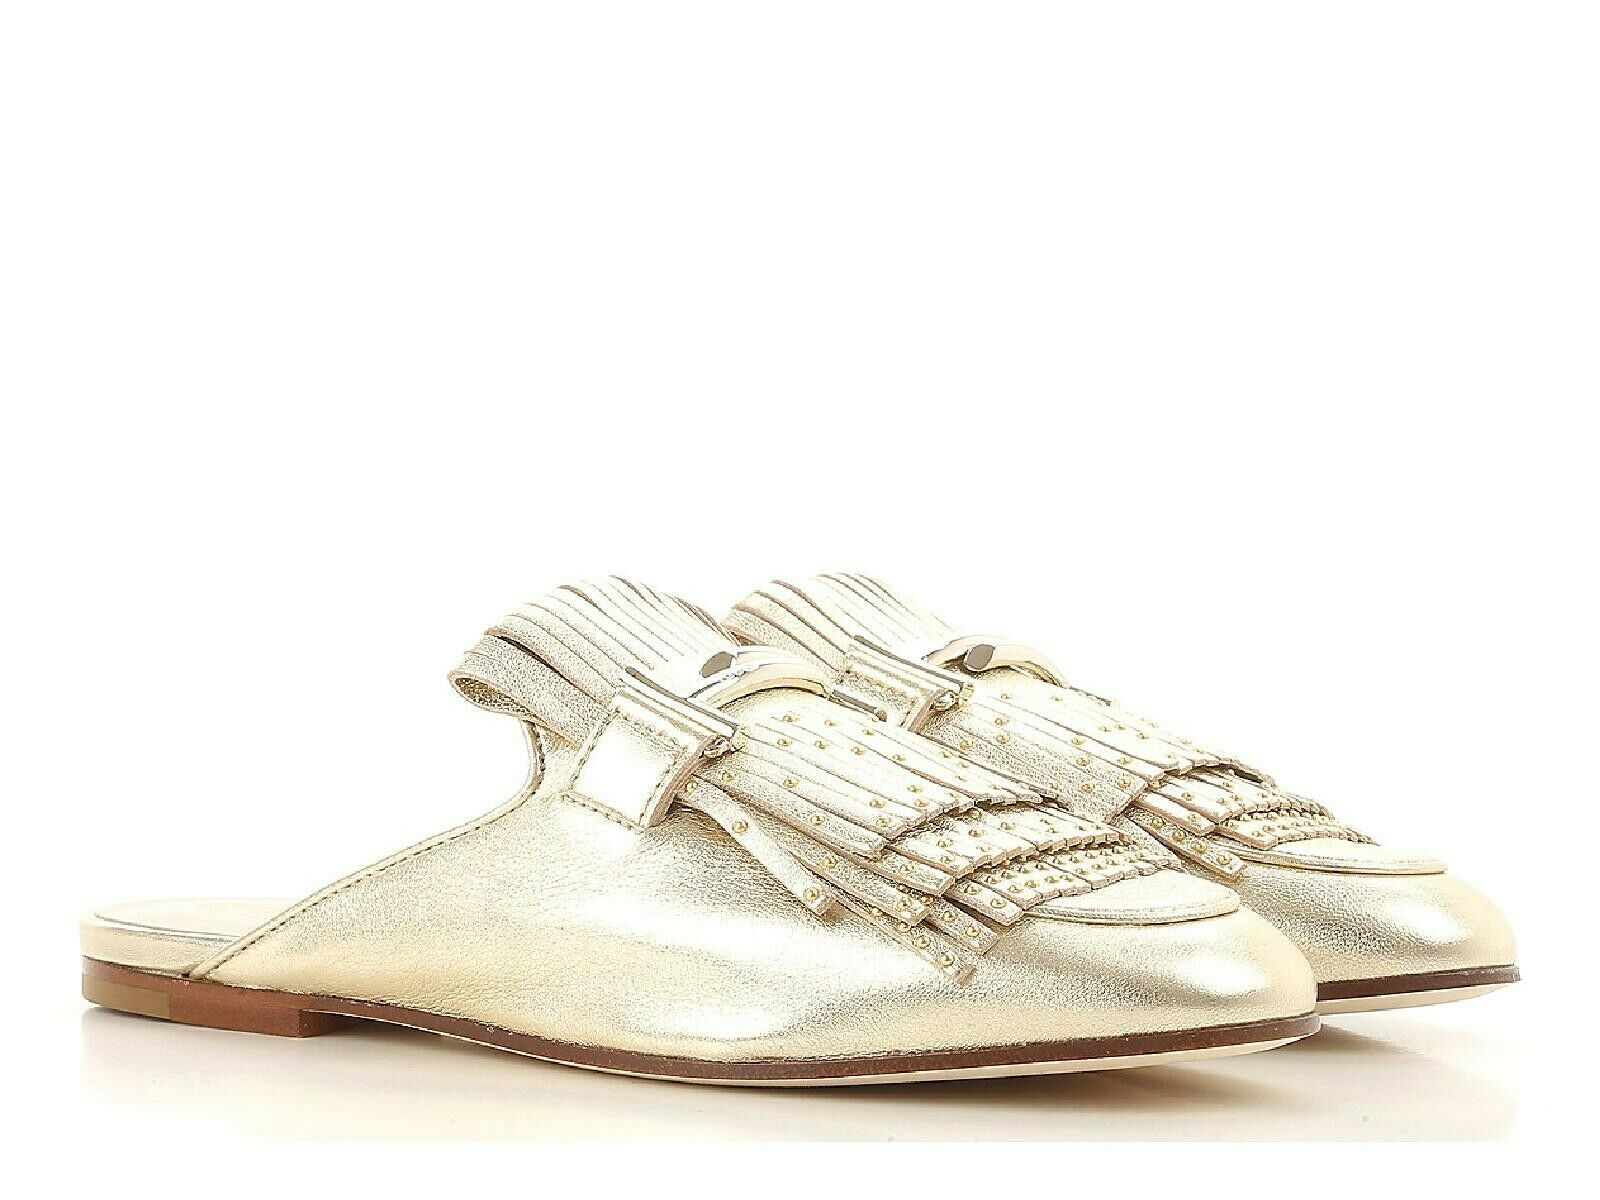 Tod's women's flat slippers sandals shoes in gold metallic leather Size UK3-IT36